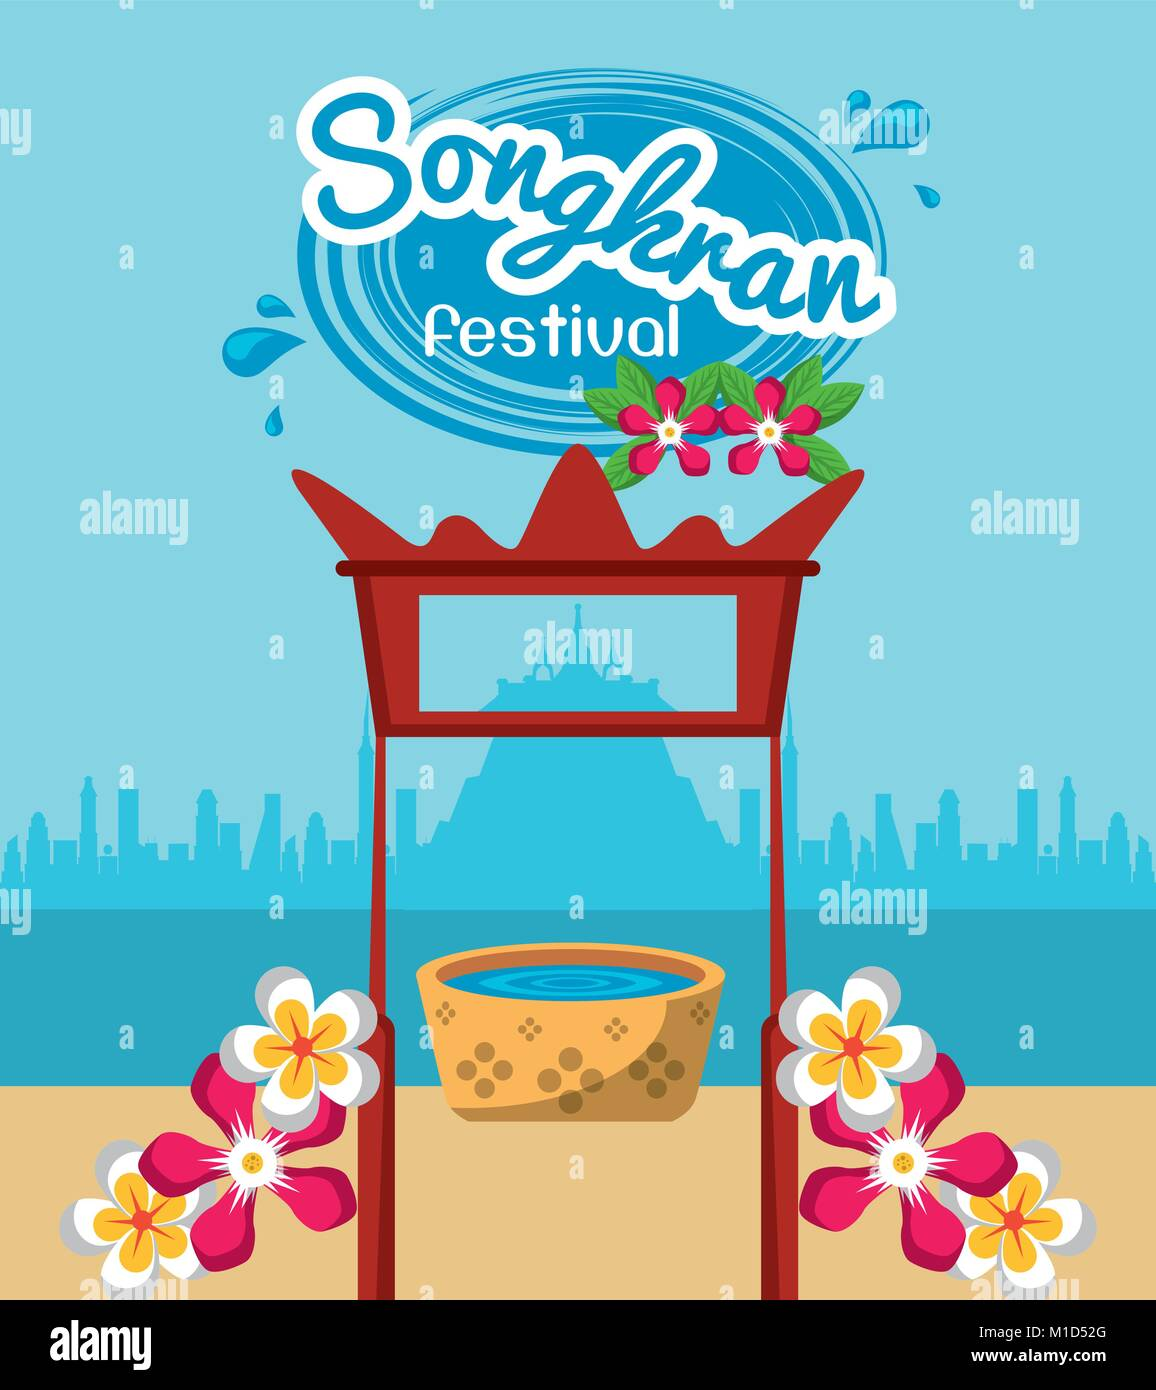 Songkran festival design - Stock Vector